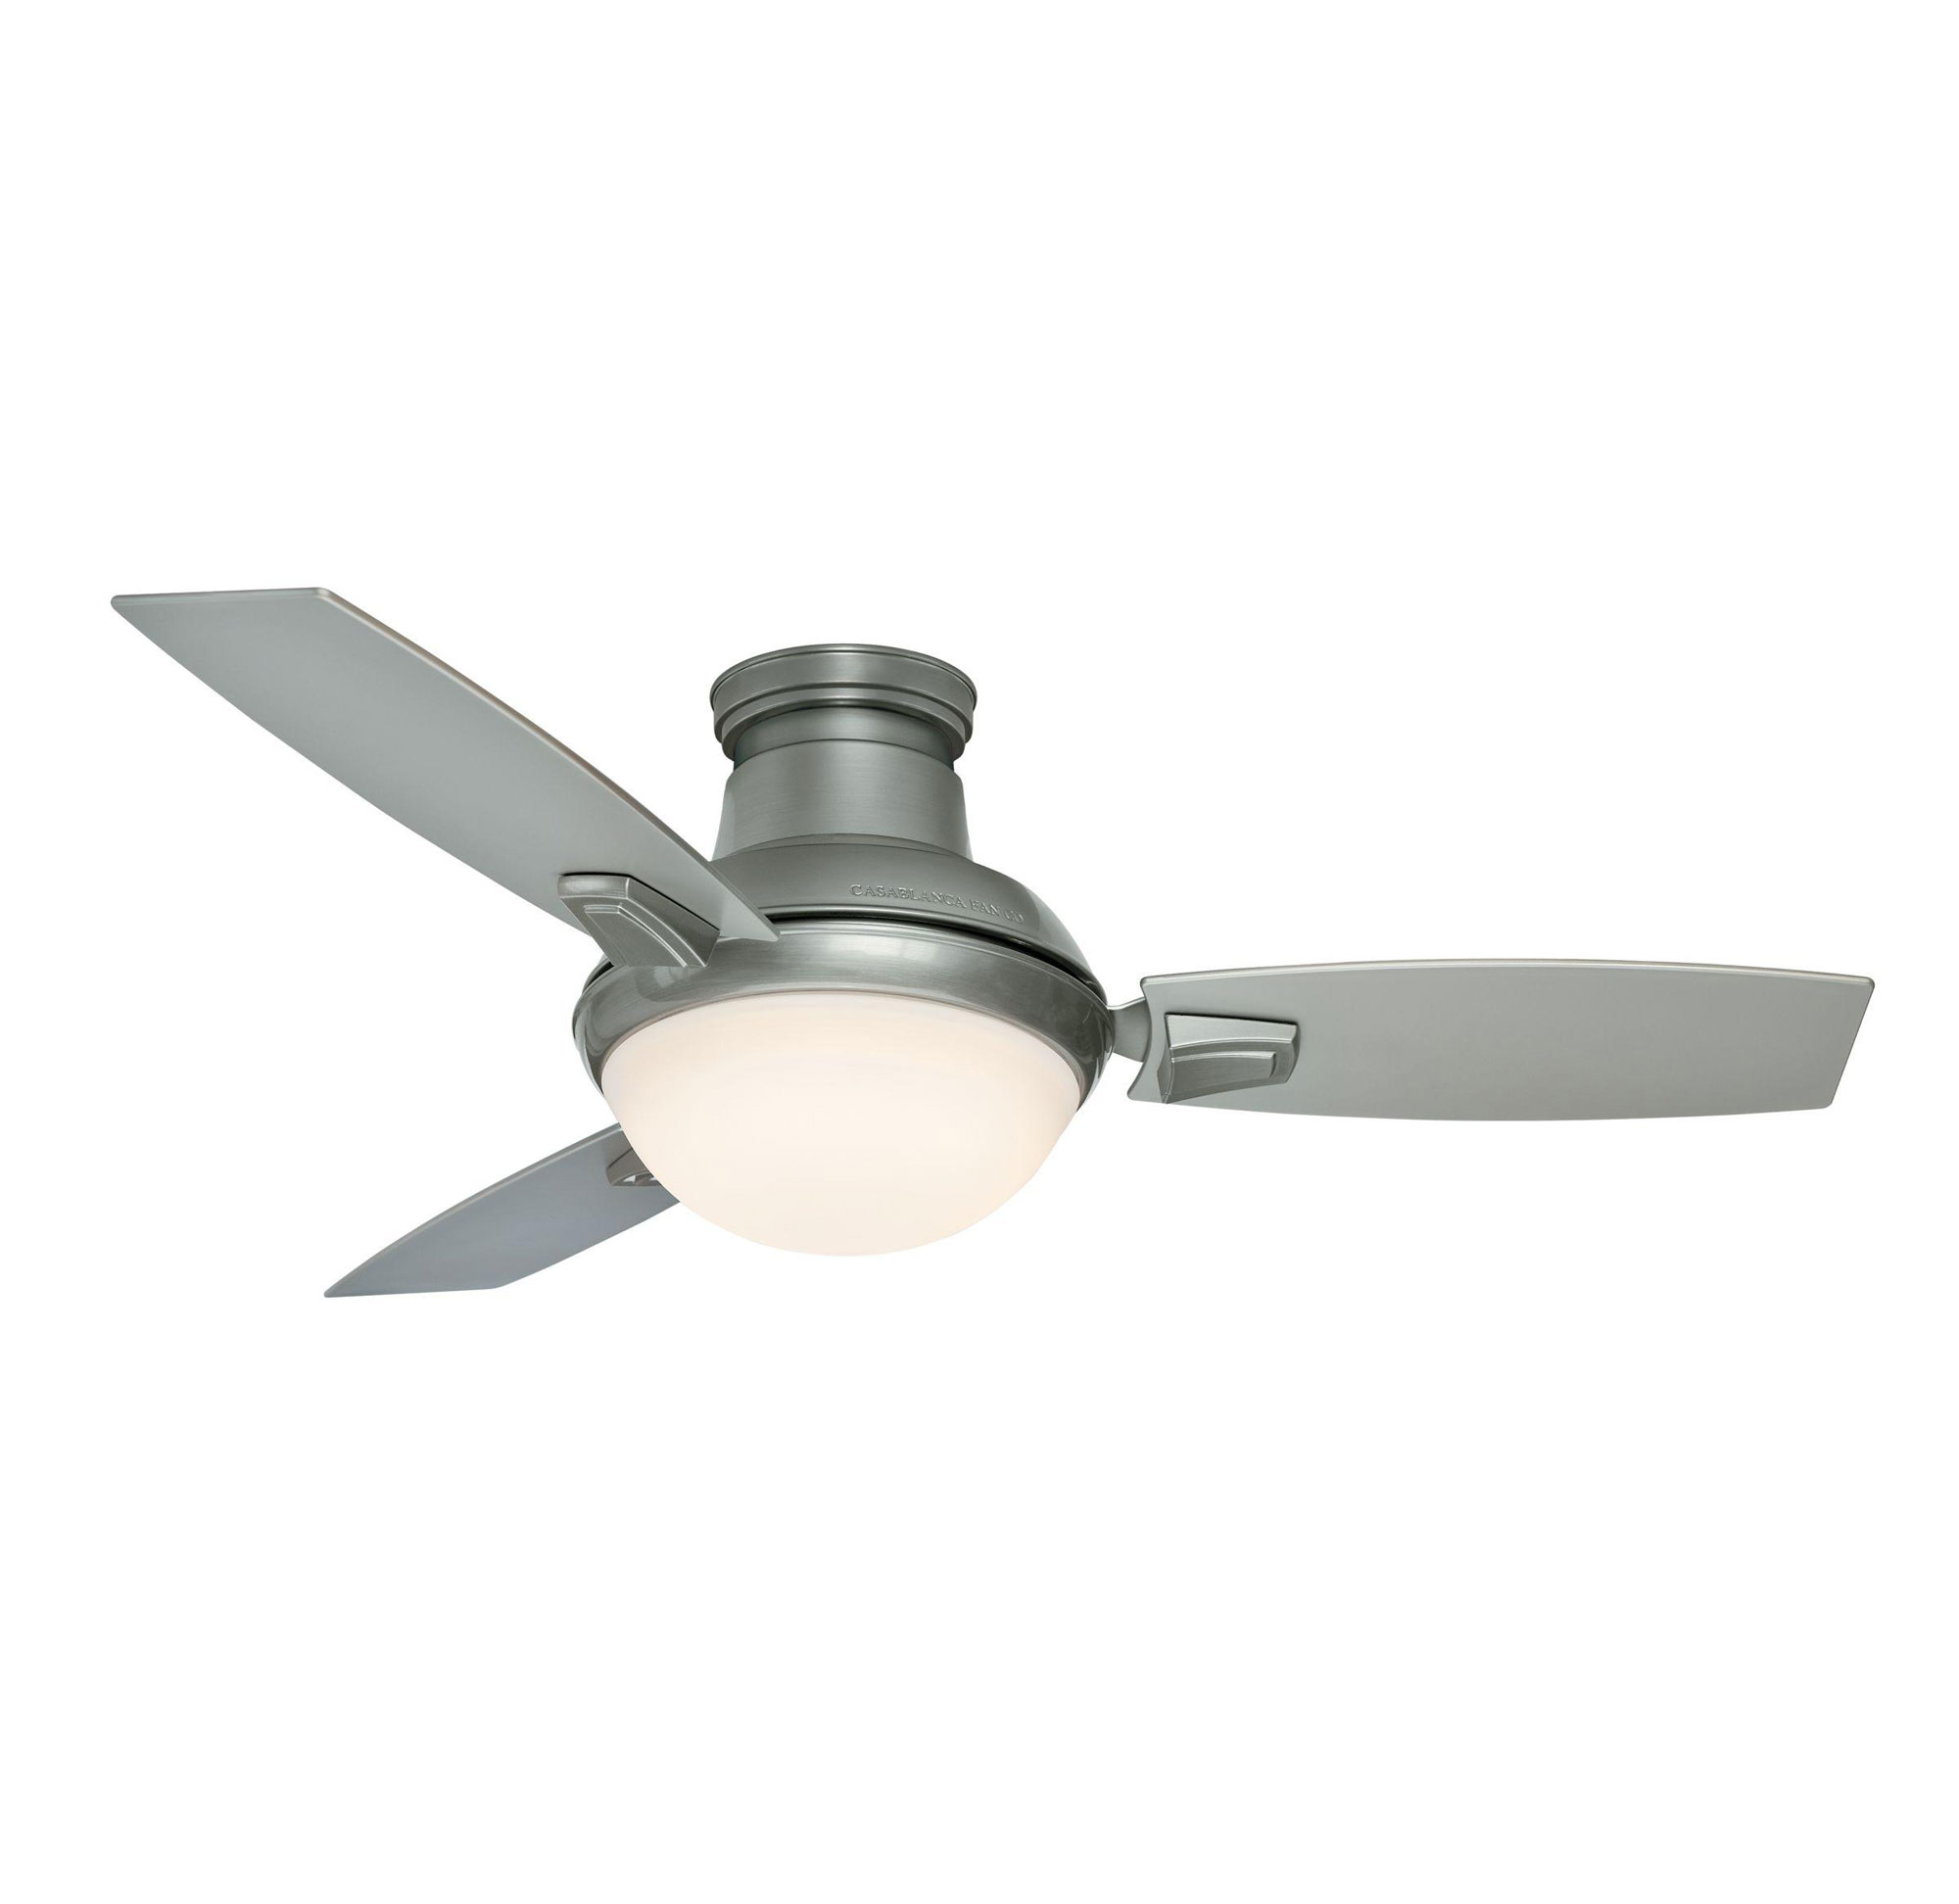 44 ceiling fan with light brushed nickel verse 44 inch led ceiling fan by casablanca 59155